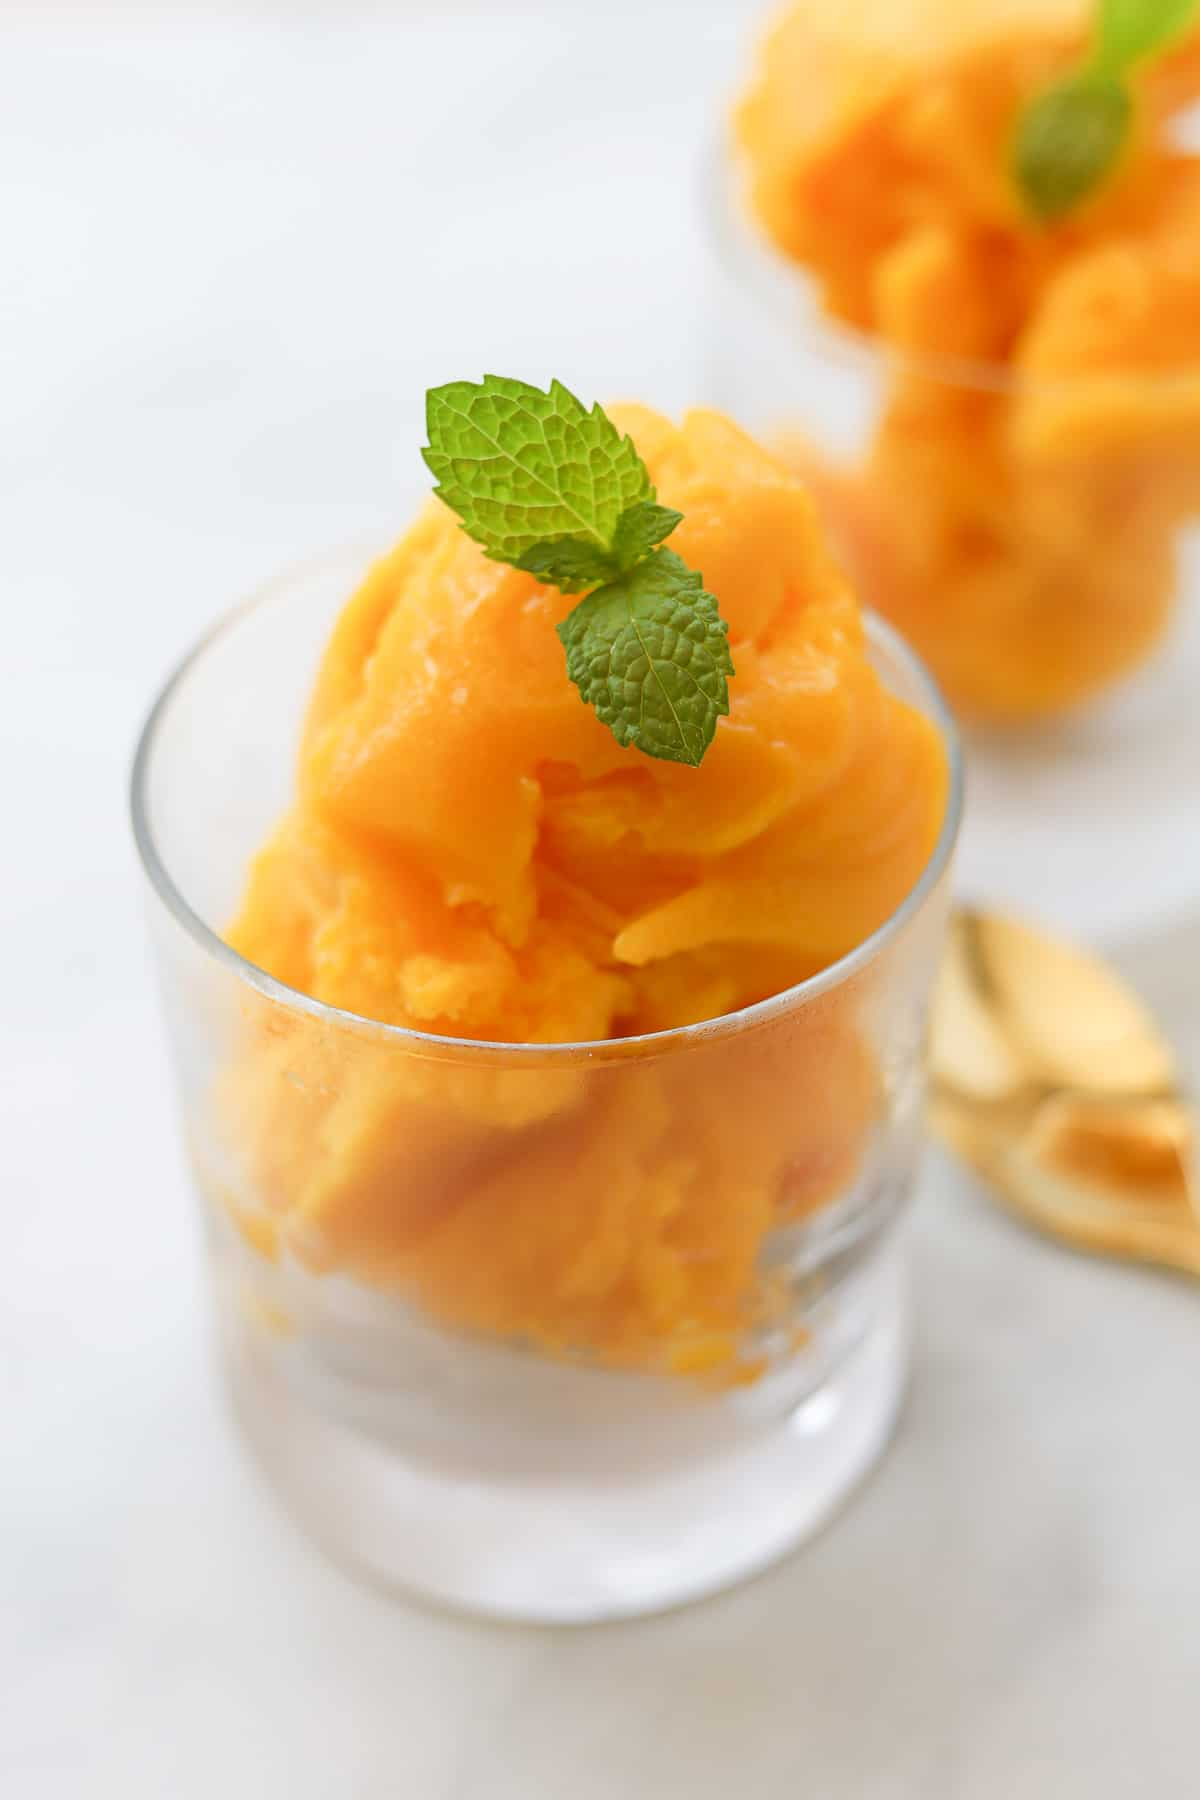 Mango sorbet garnished with mint leaves in a cup.